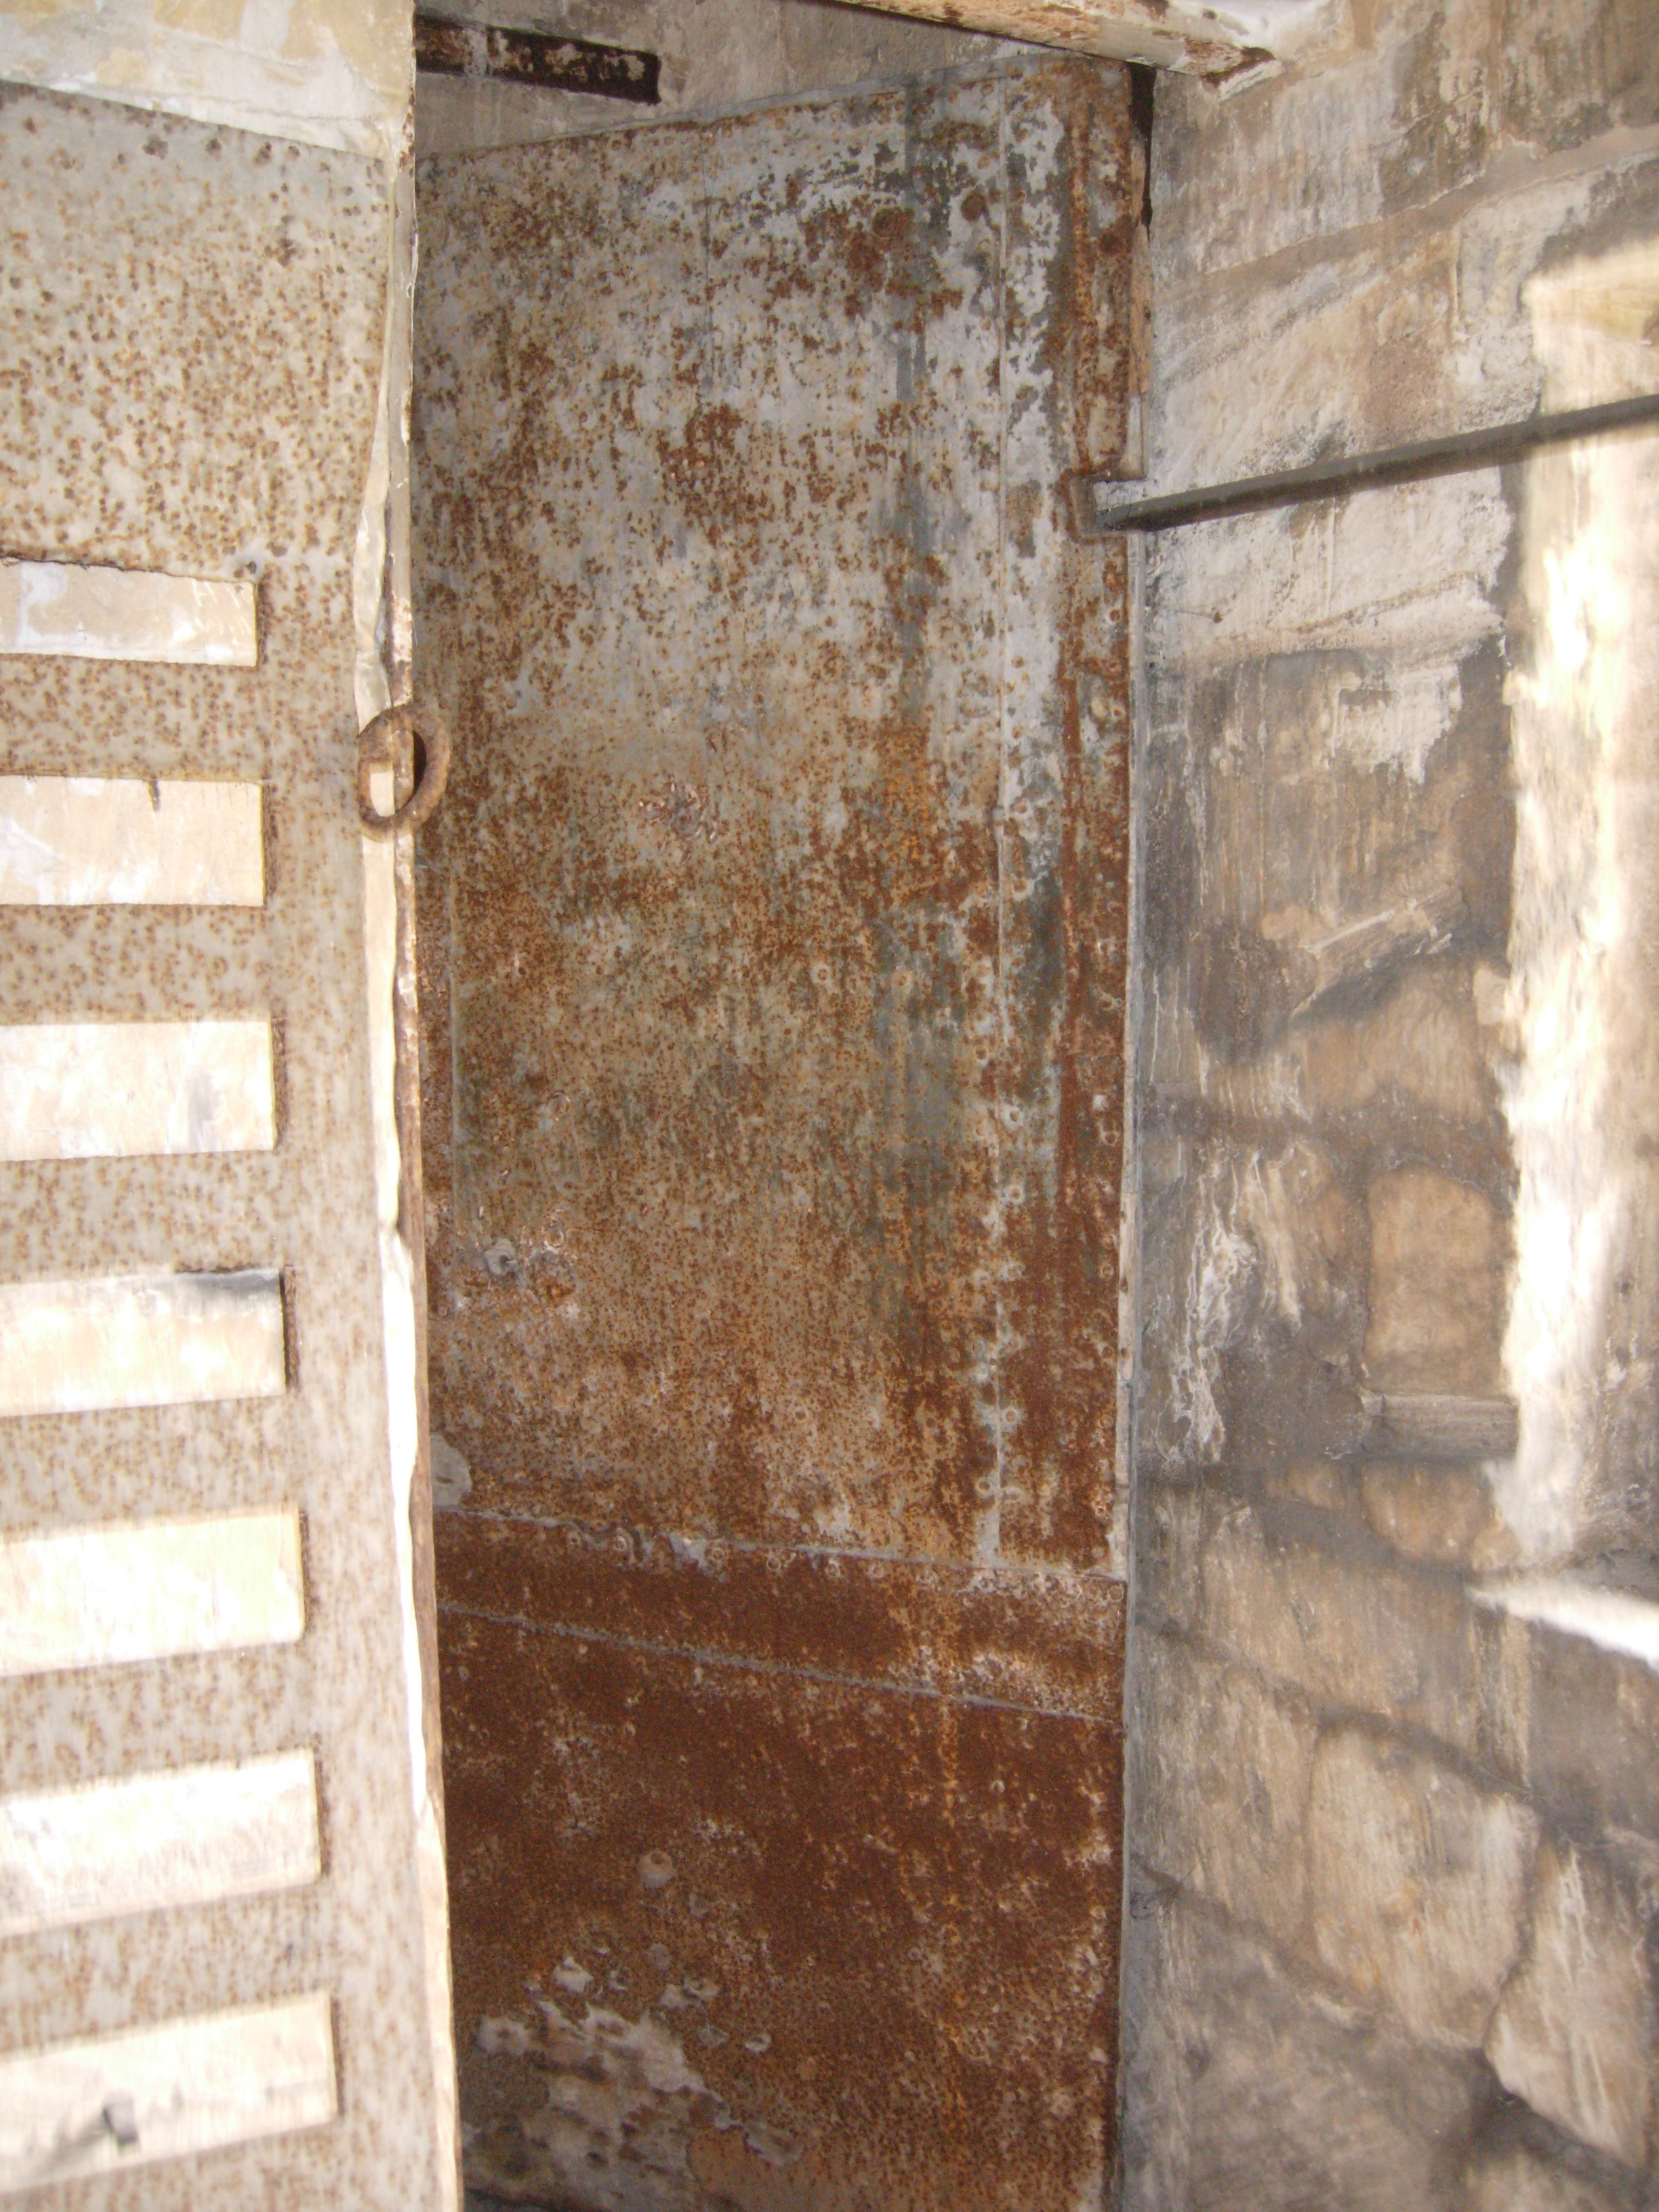 Lock-up interior, showing the door to the North cell.